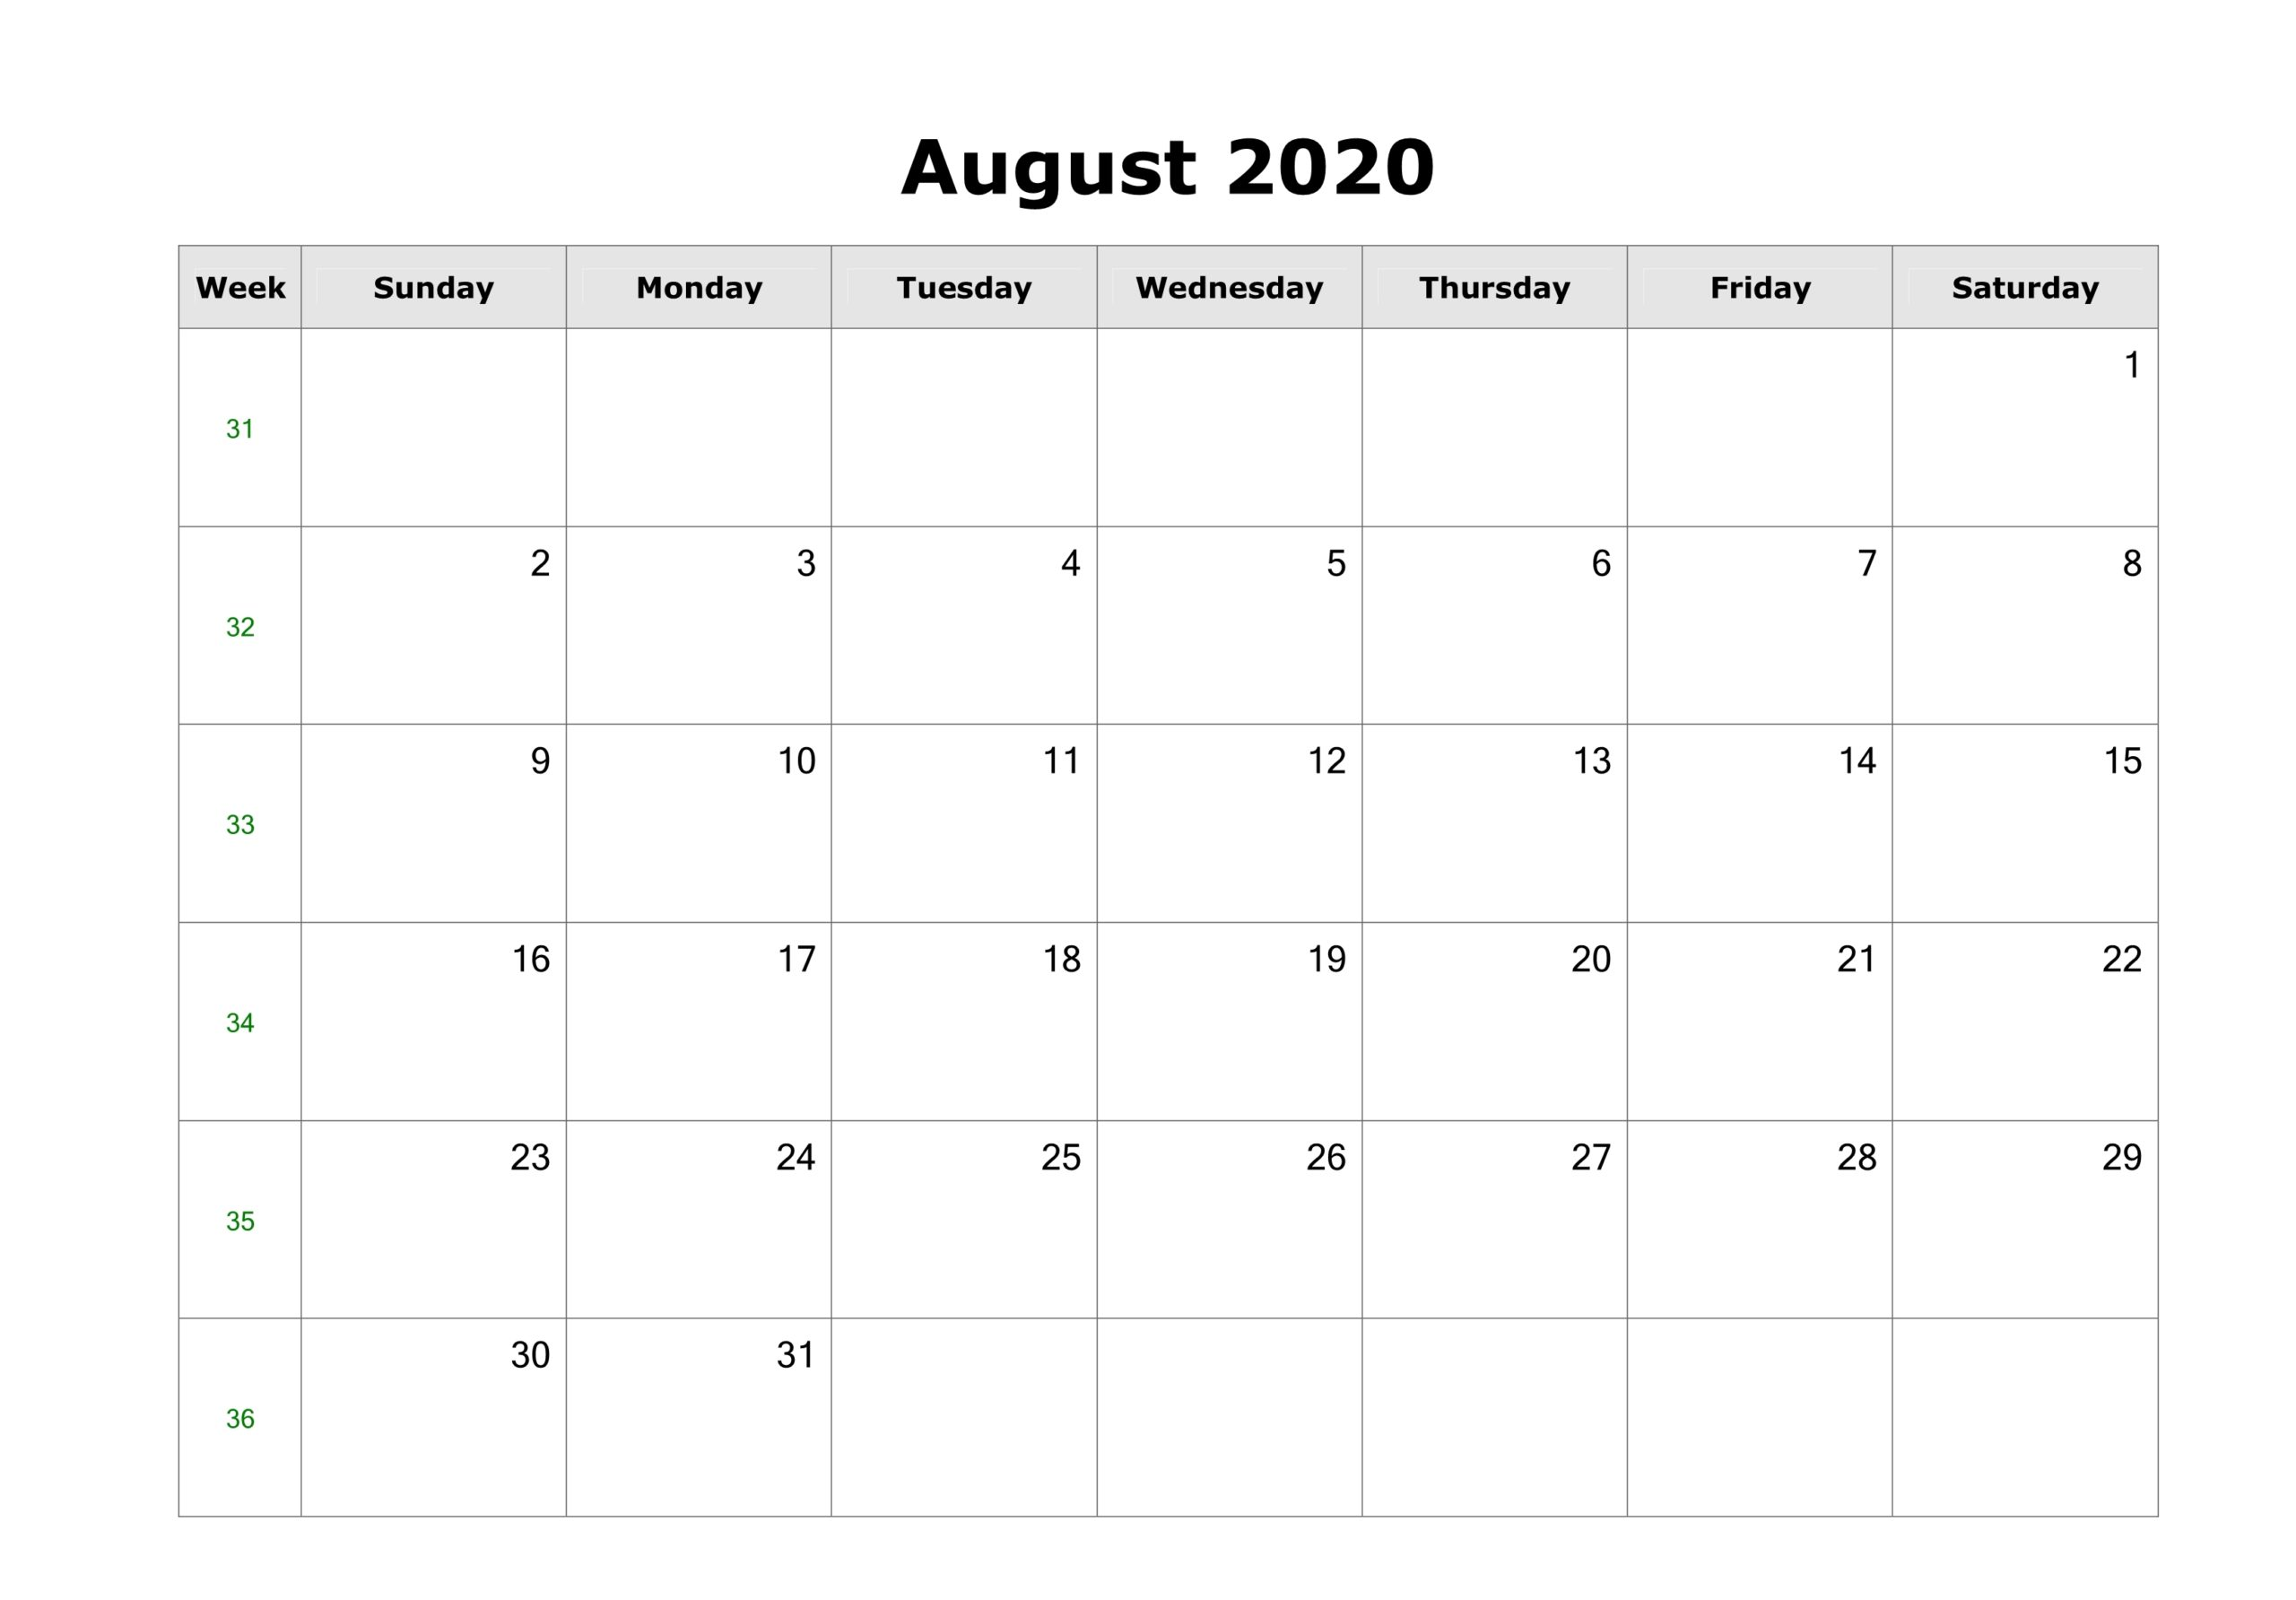 August 2020 Calendar with Holidays Australia